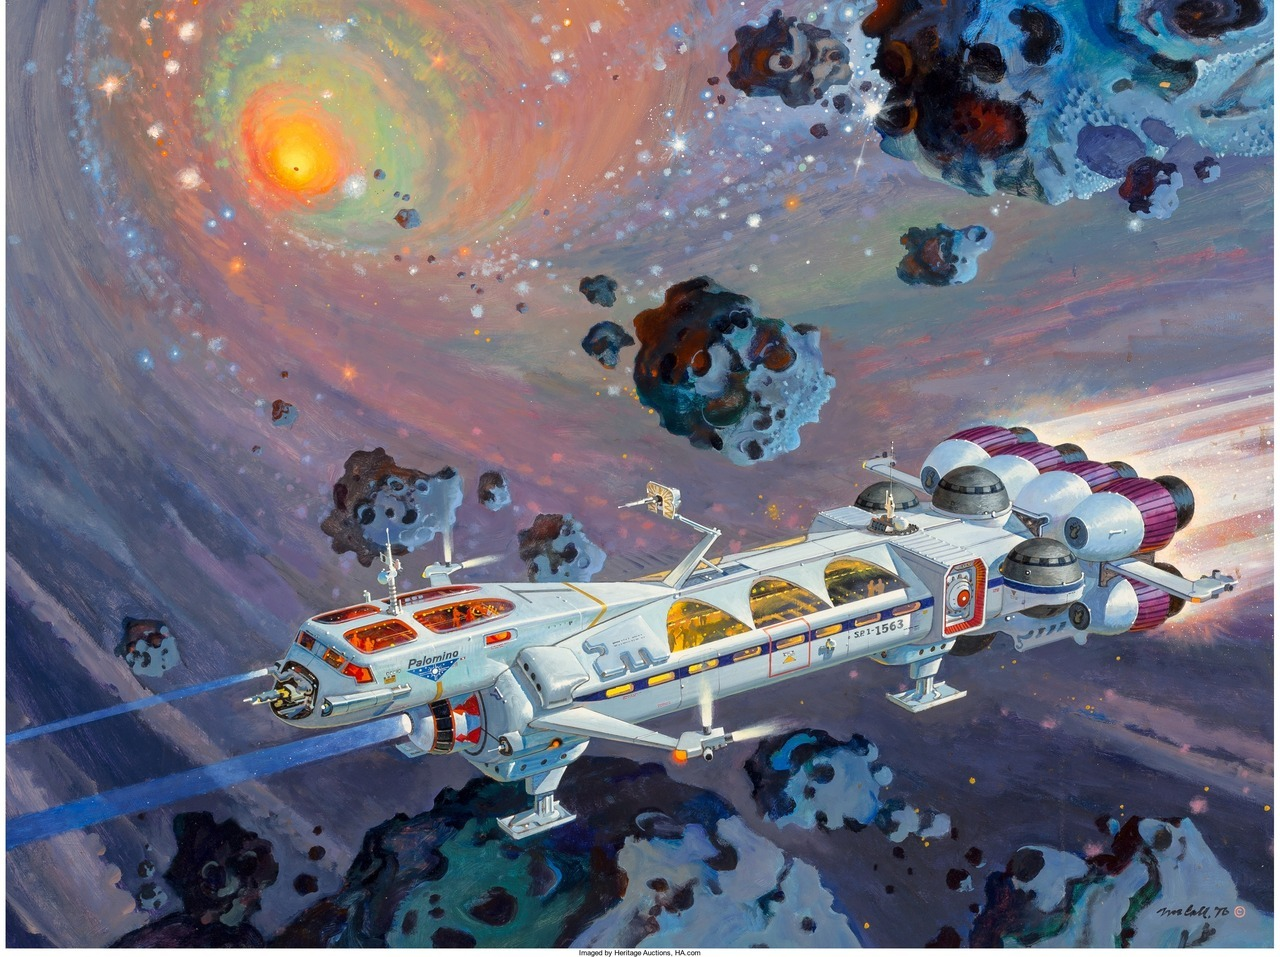 image of a space ship shooting